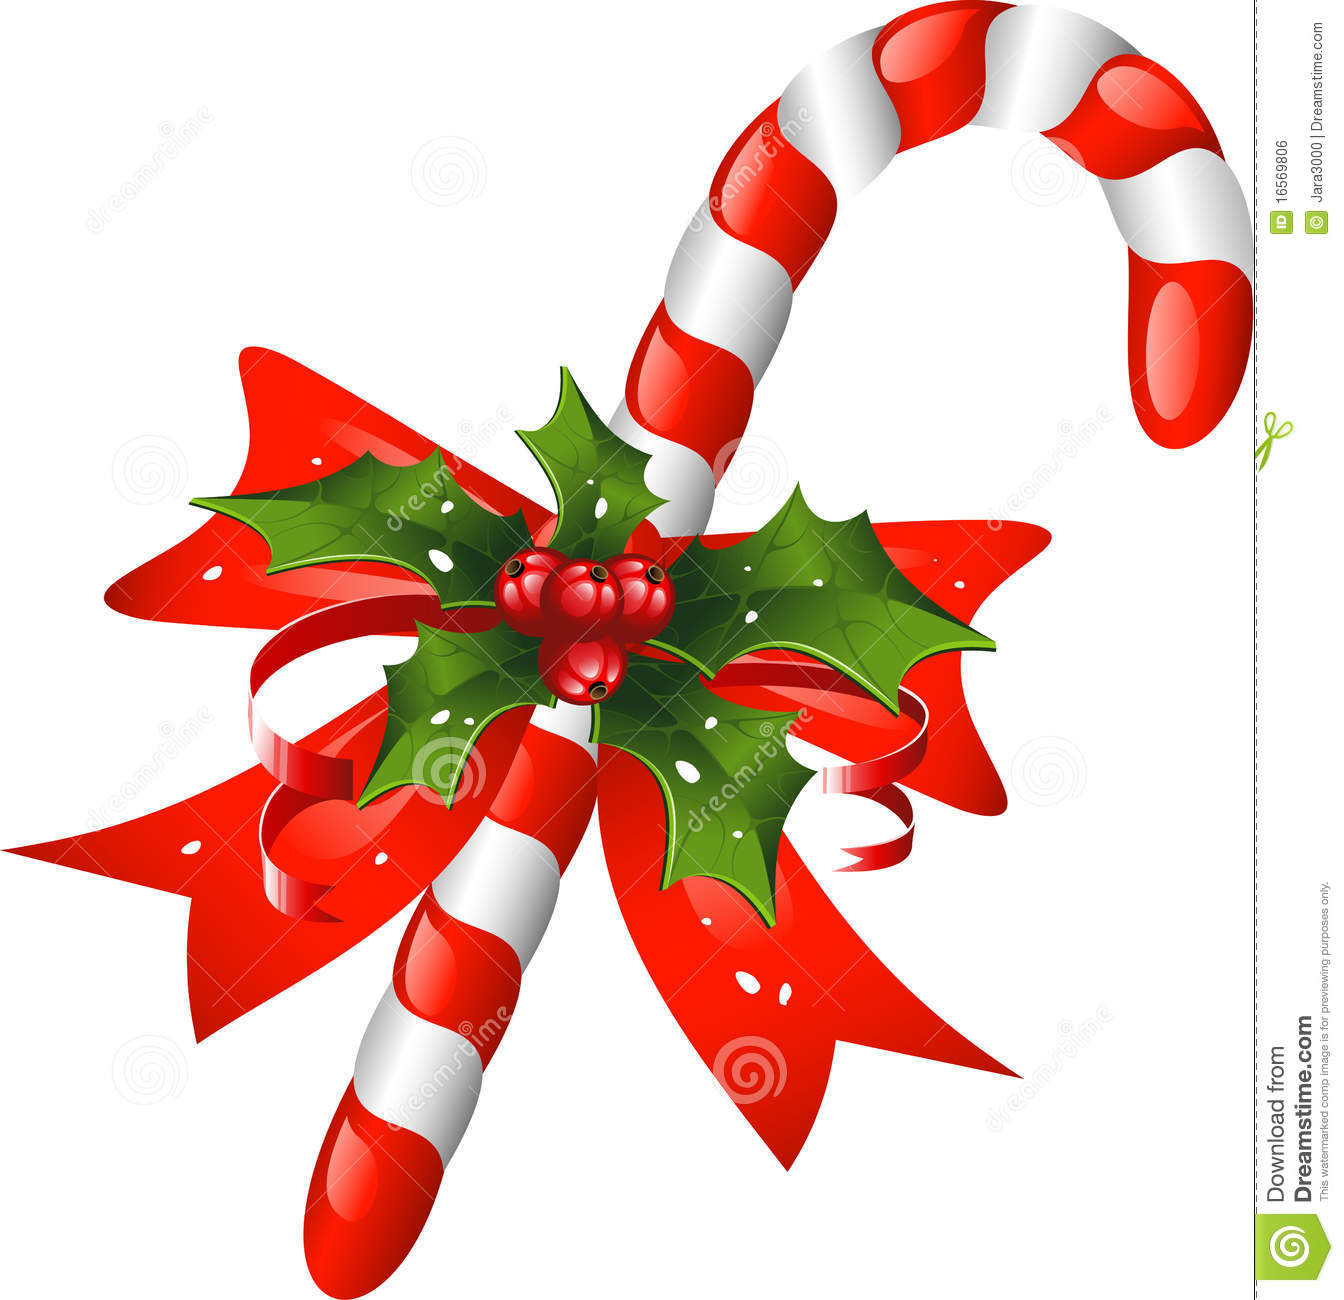 Christmas Candy Cane Images  Christmas Candy Cane Decorated With A Bow And Holl Stock